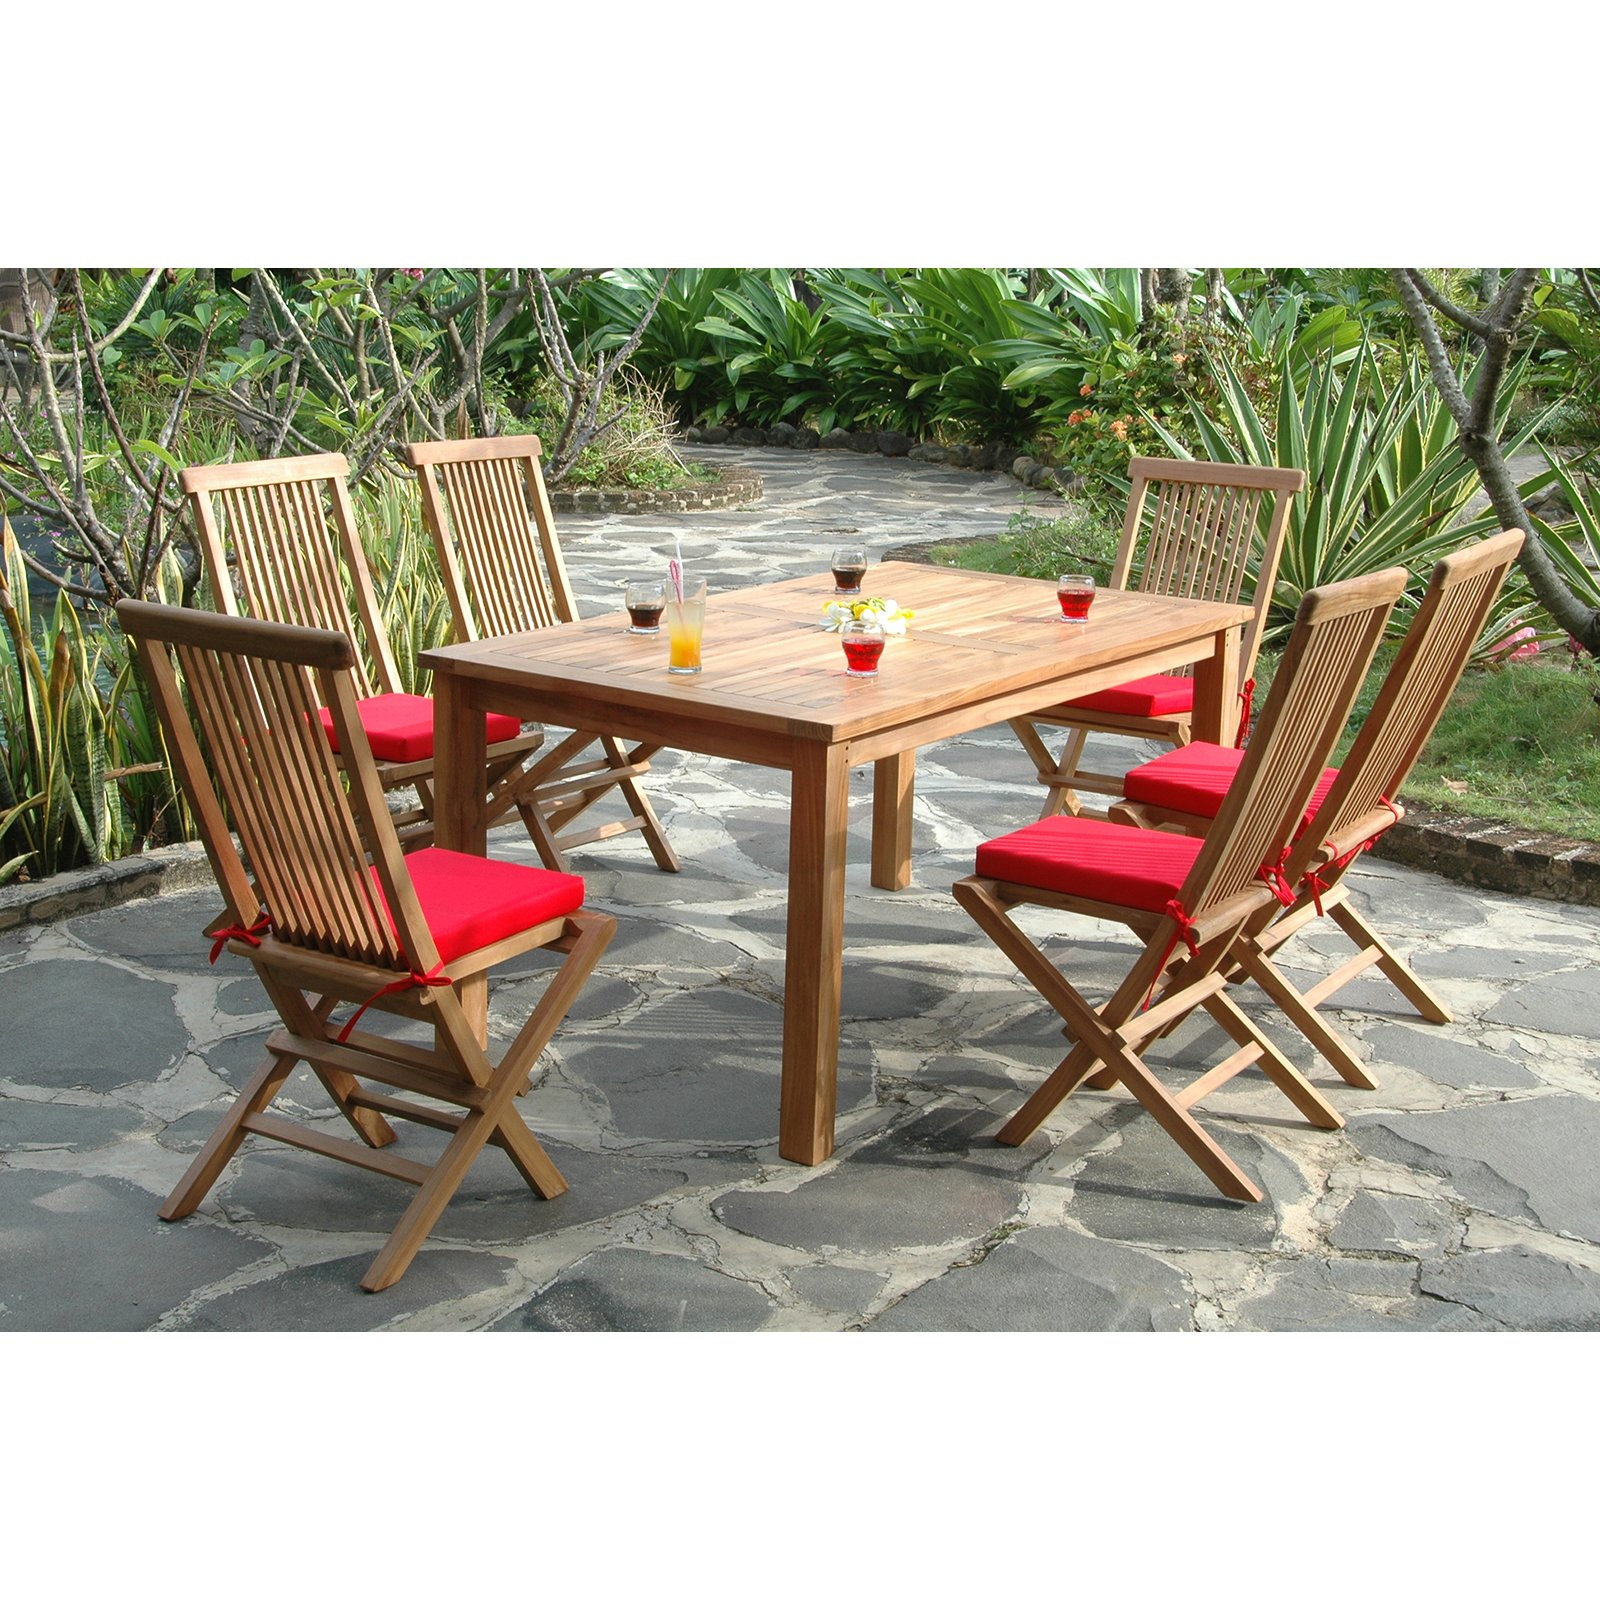 Anderson Teak Bristol Patio Dining Room Set by